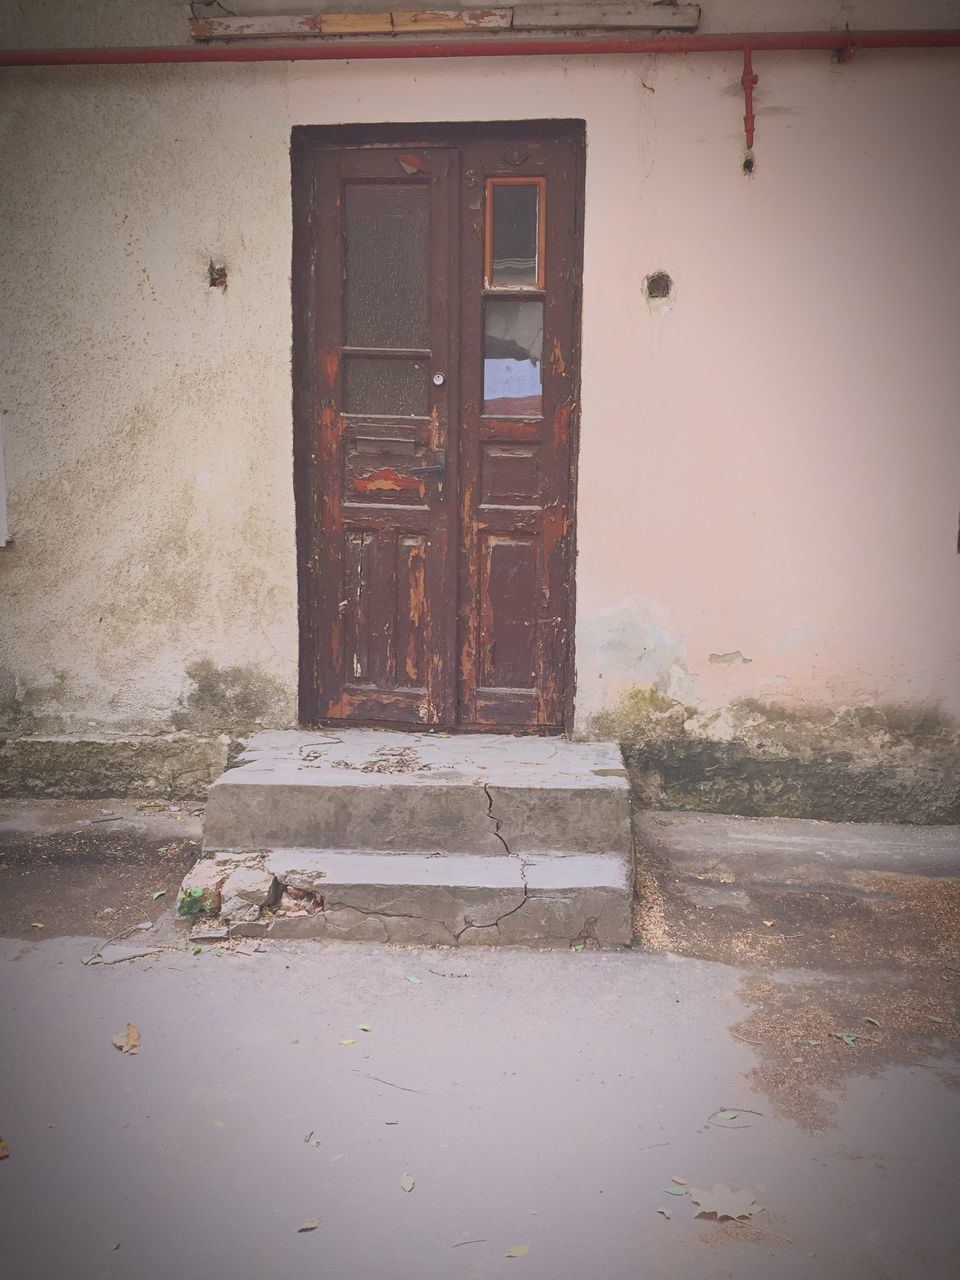 built structure, architecture, door, building exterior, window, no people, day, outdoors, water, nature